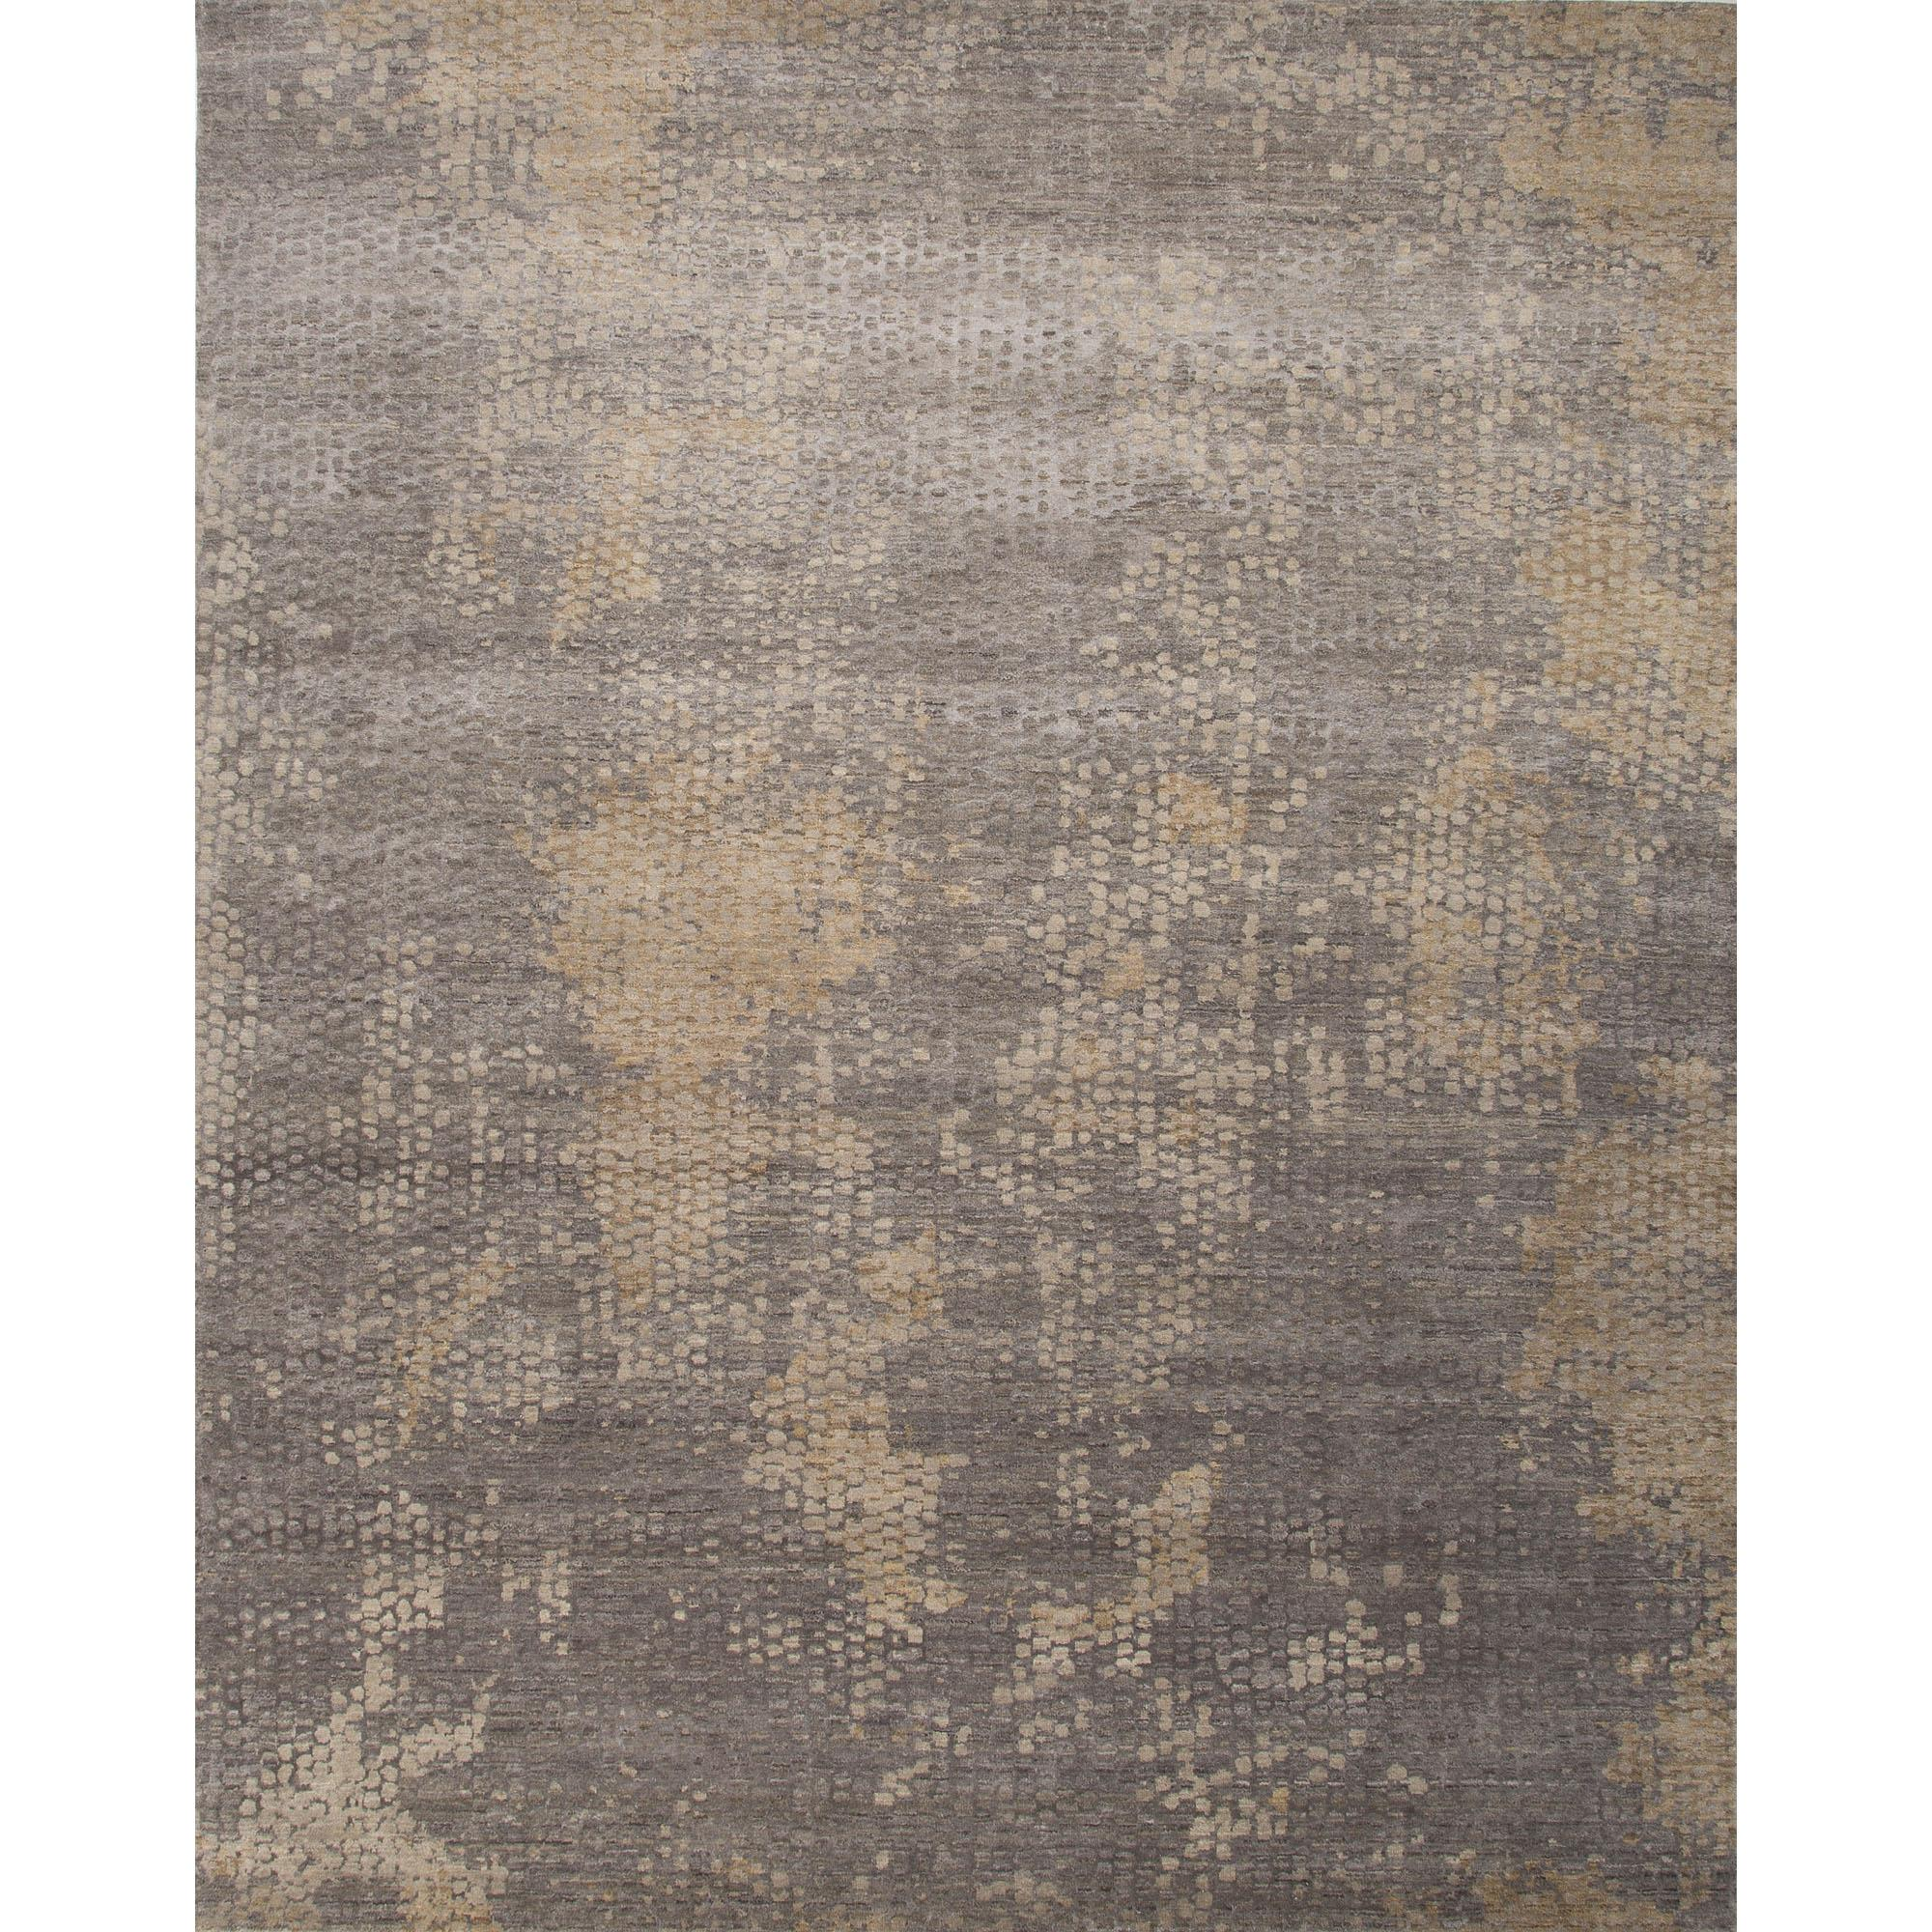 JAIPUR Rugs Chaos Theory By Kavi 2 x 3 Rug - Item Number: RUG116981